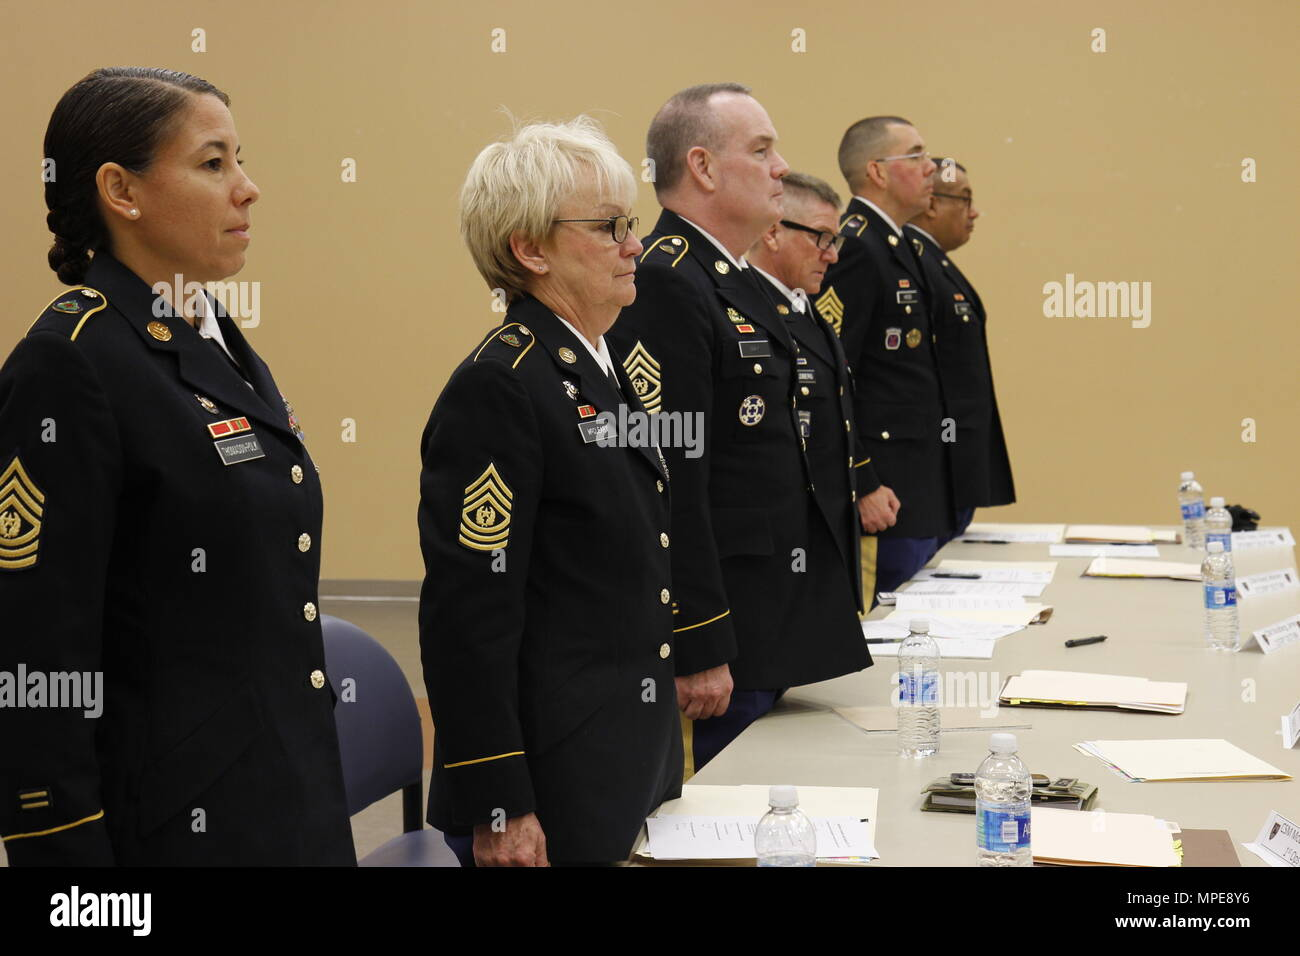 US Army Command Sgts Maj Of The 91st Training Division Listen To A Soldier Say Non Commisioned Officers Creed During Board On February 9th